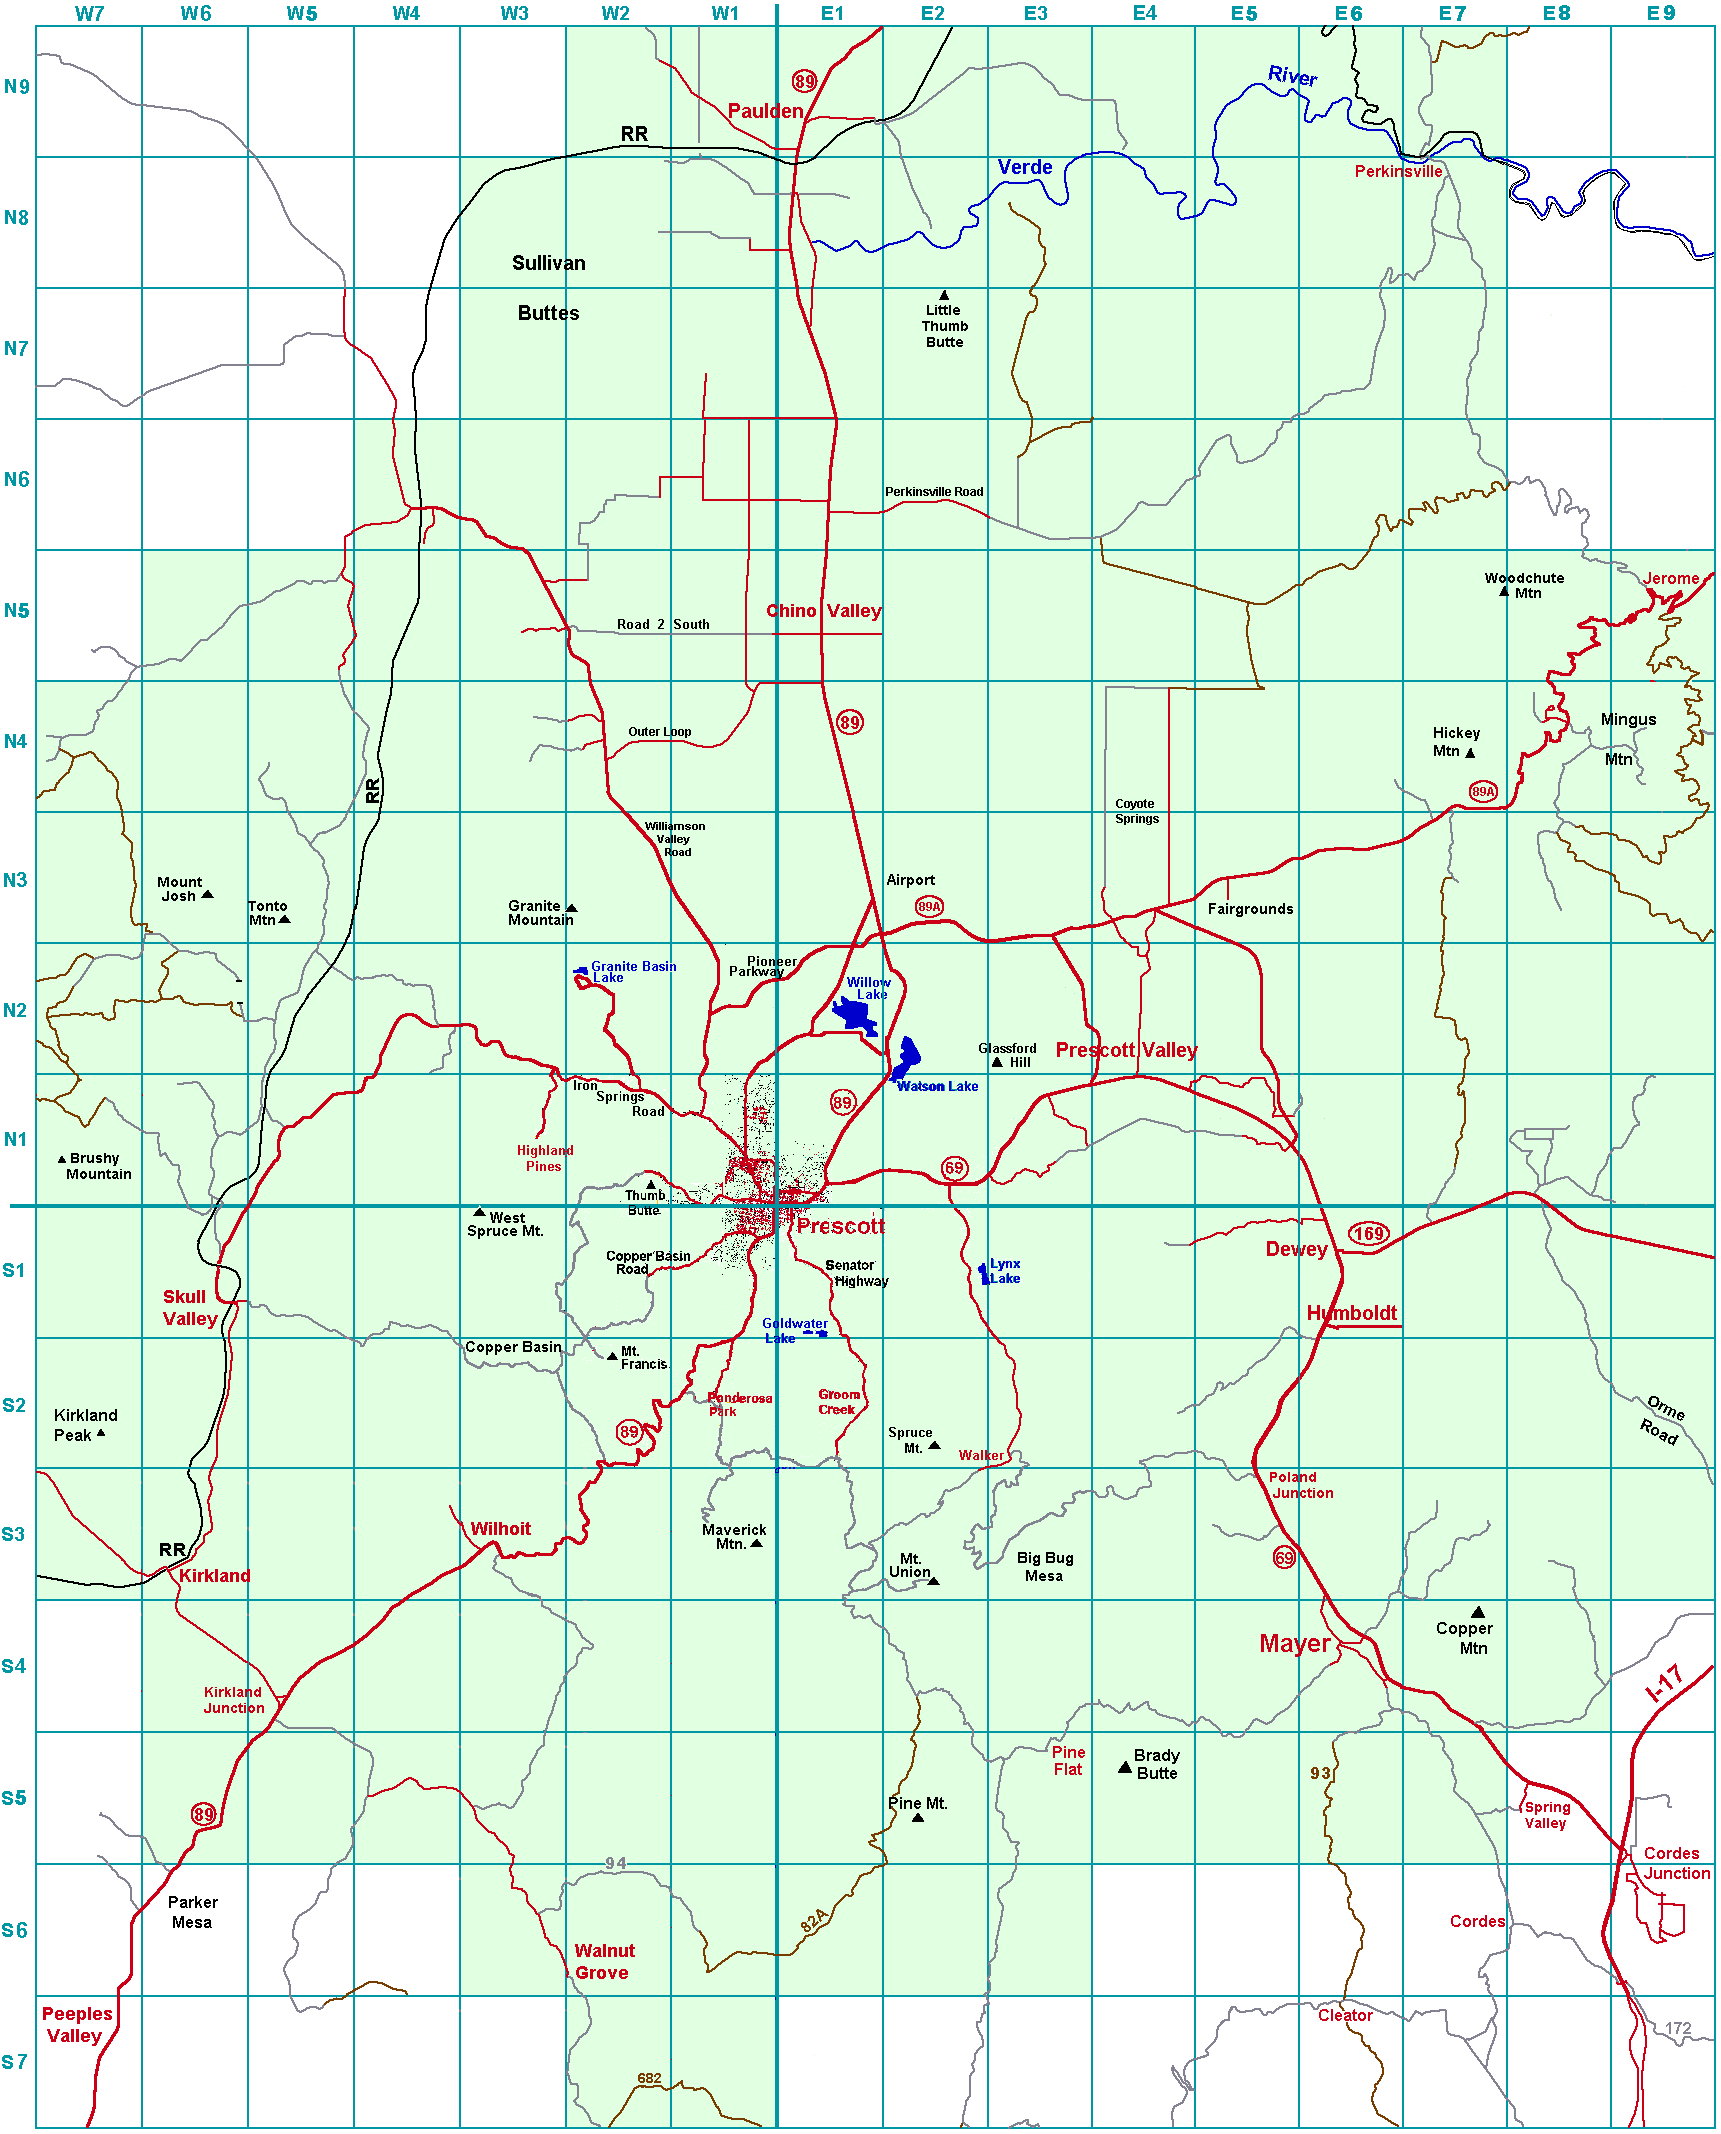 Trail maps index